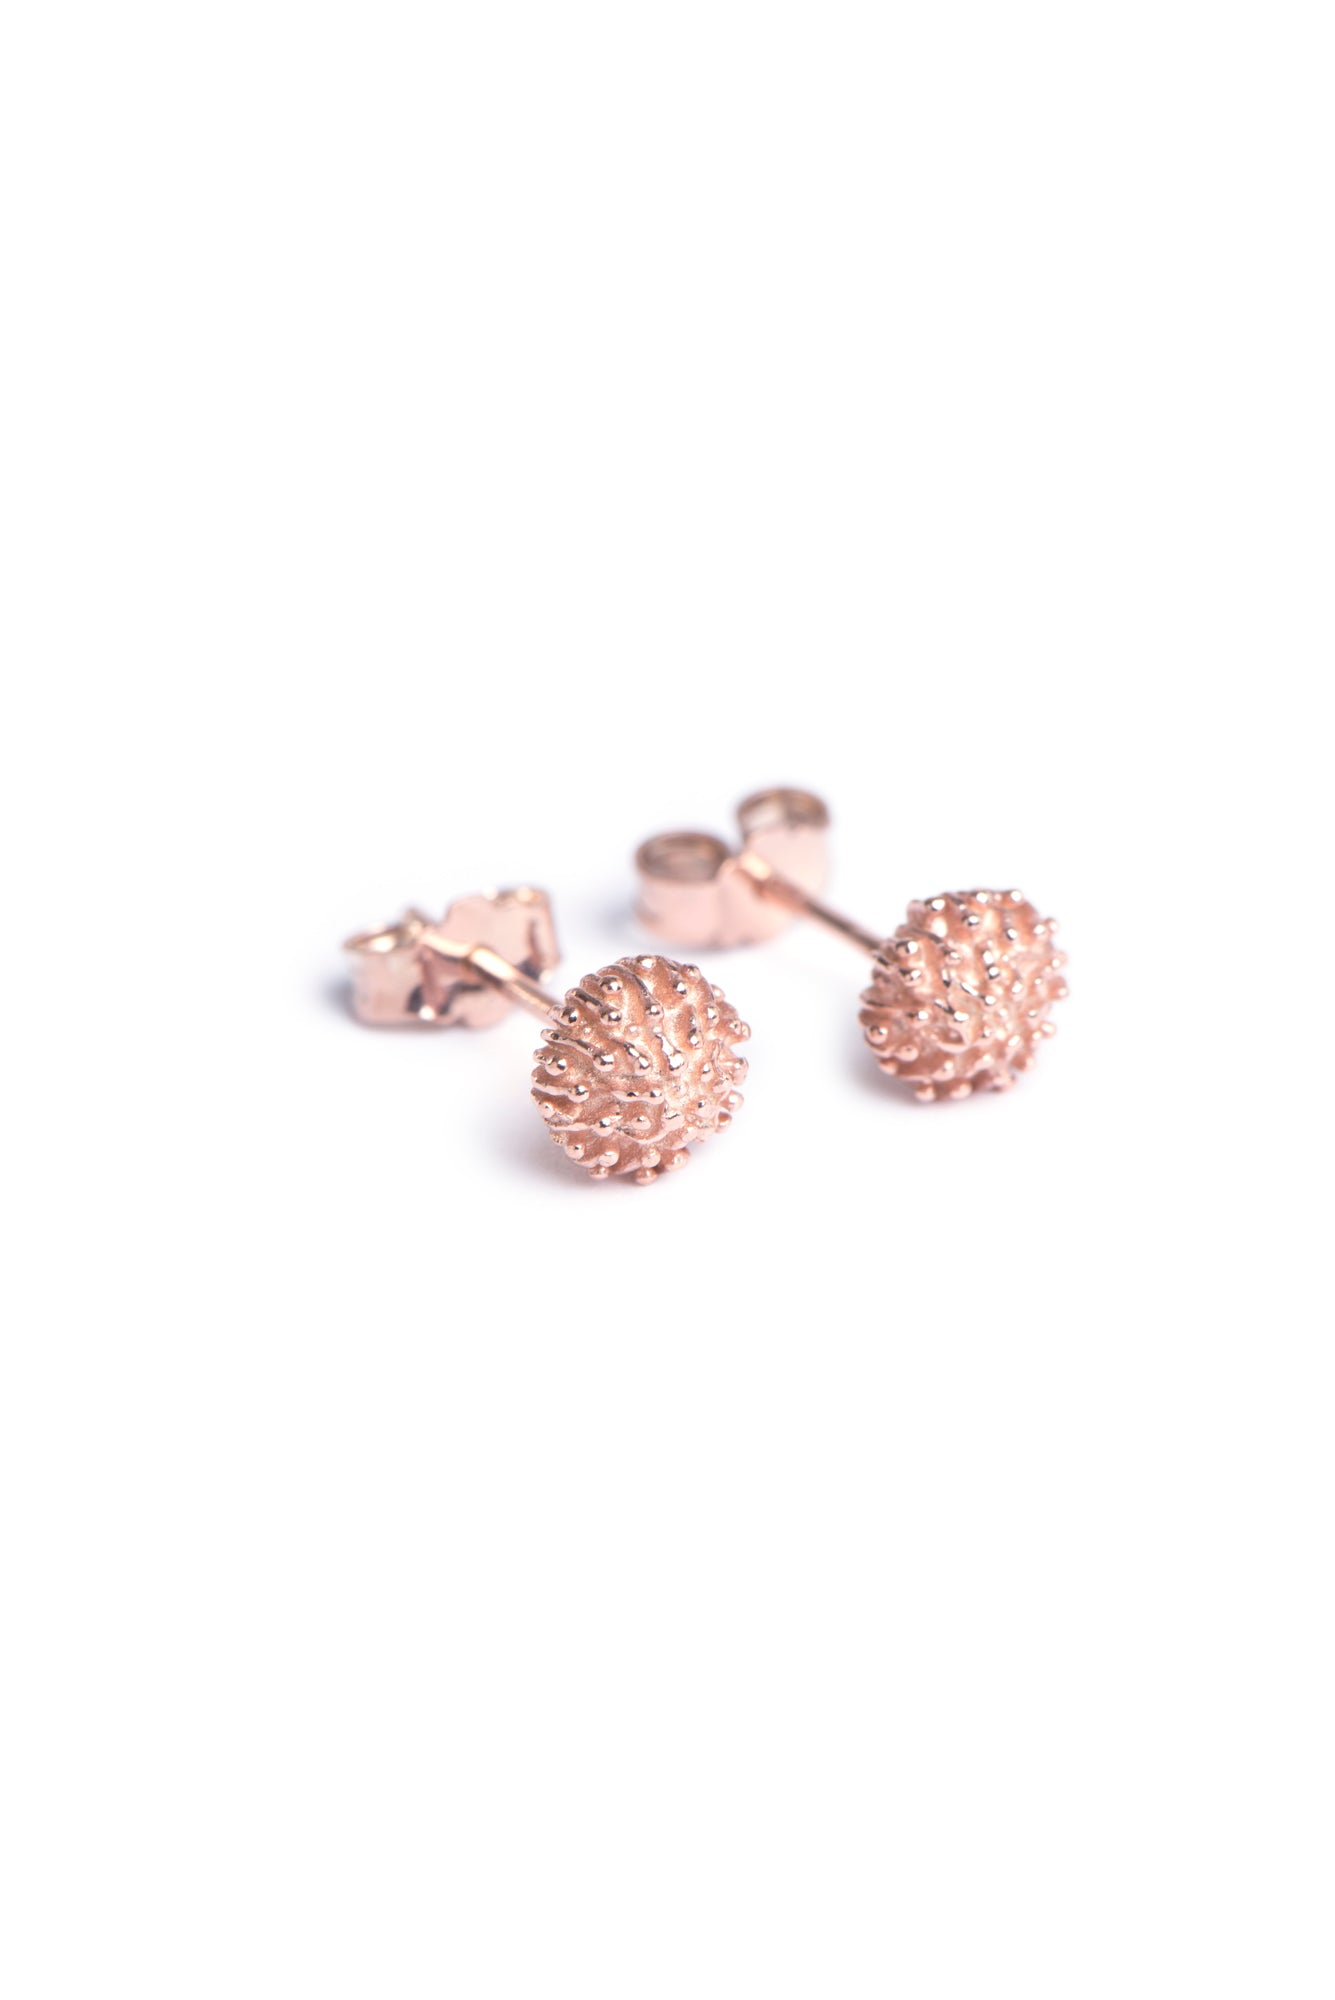 Protea Pincushion Studs in Rose Gold